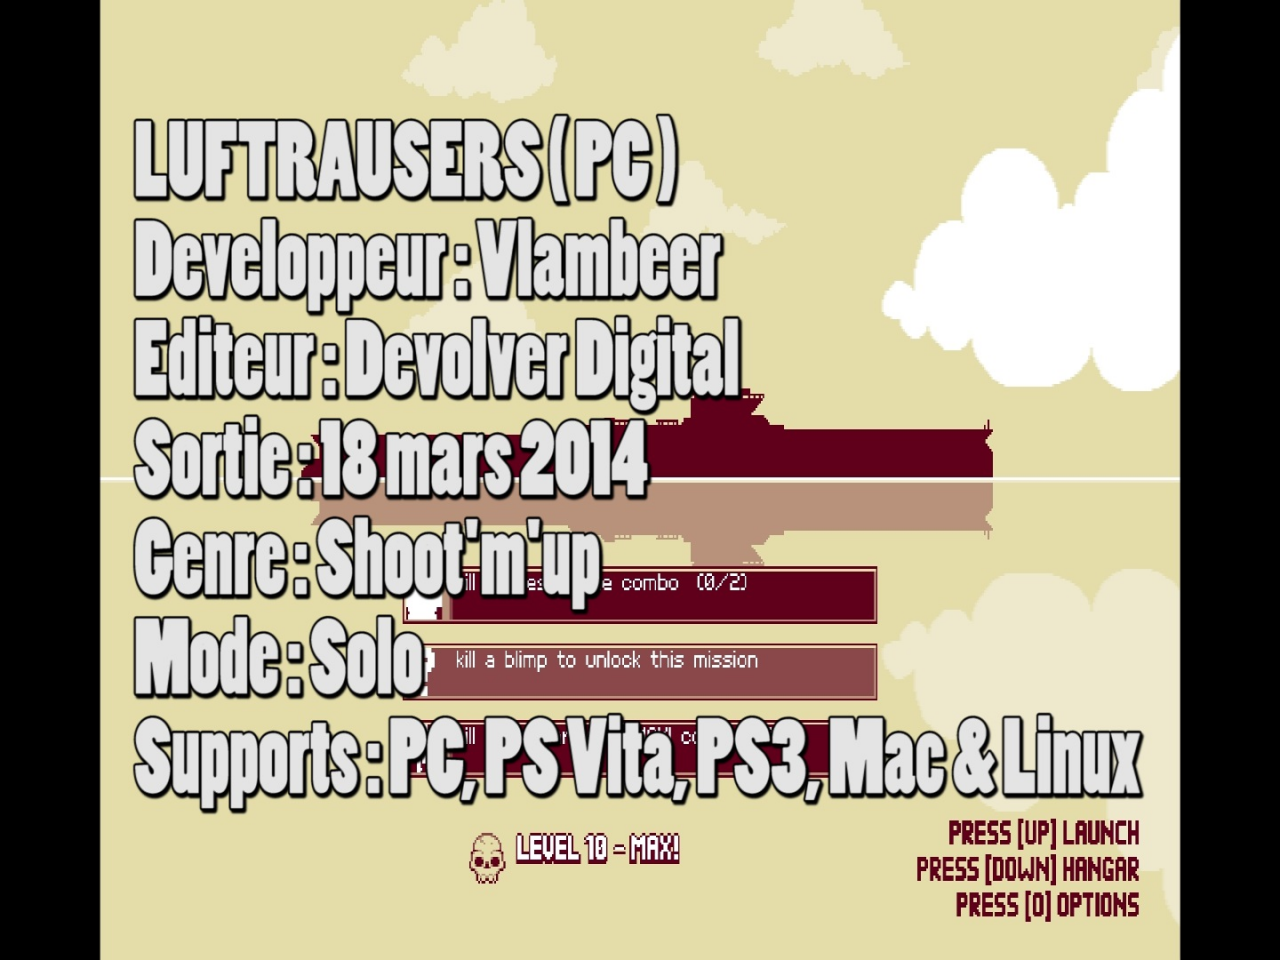 Luftrausers Let's play